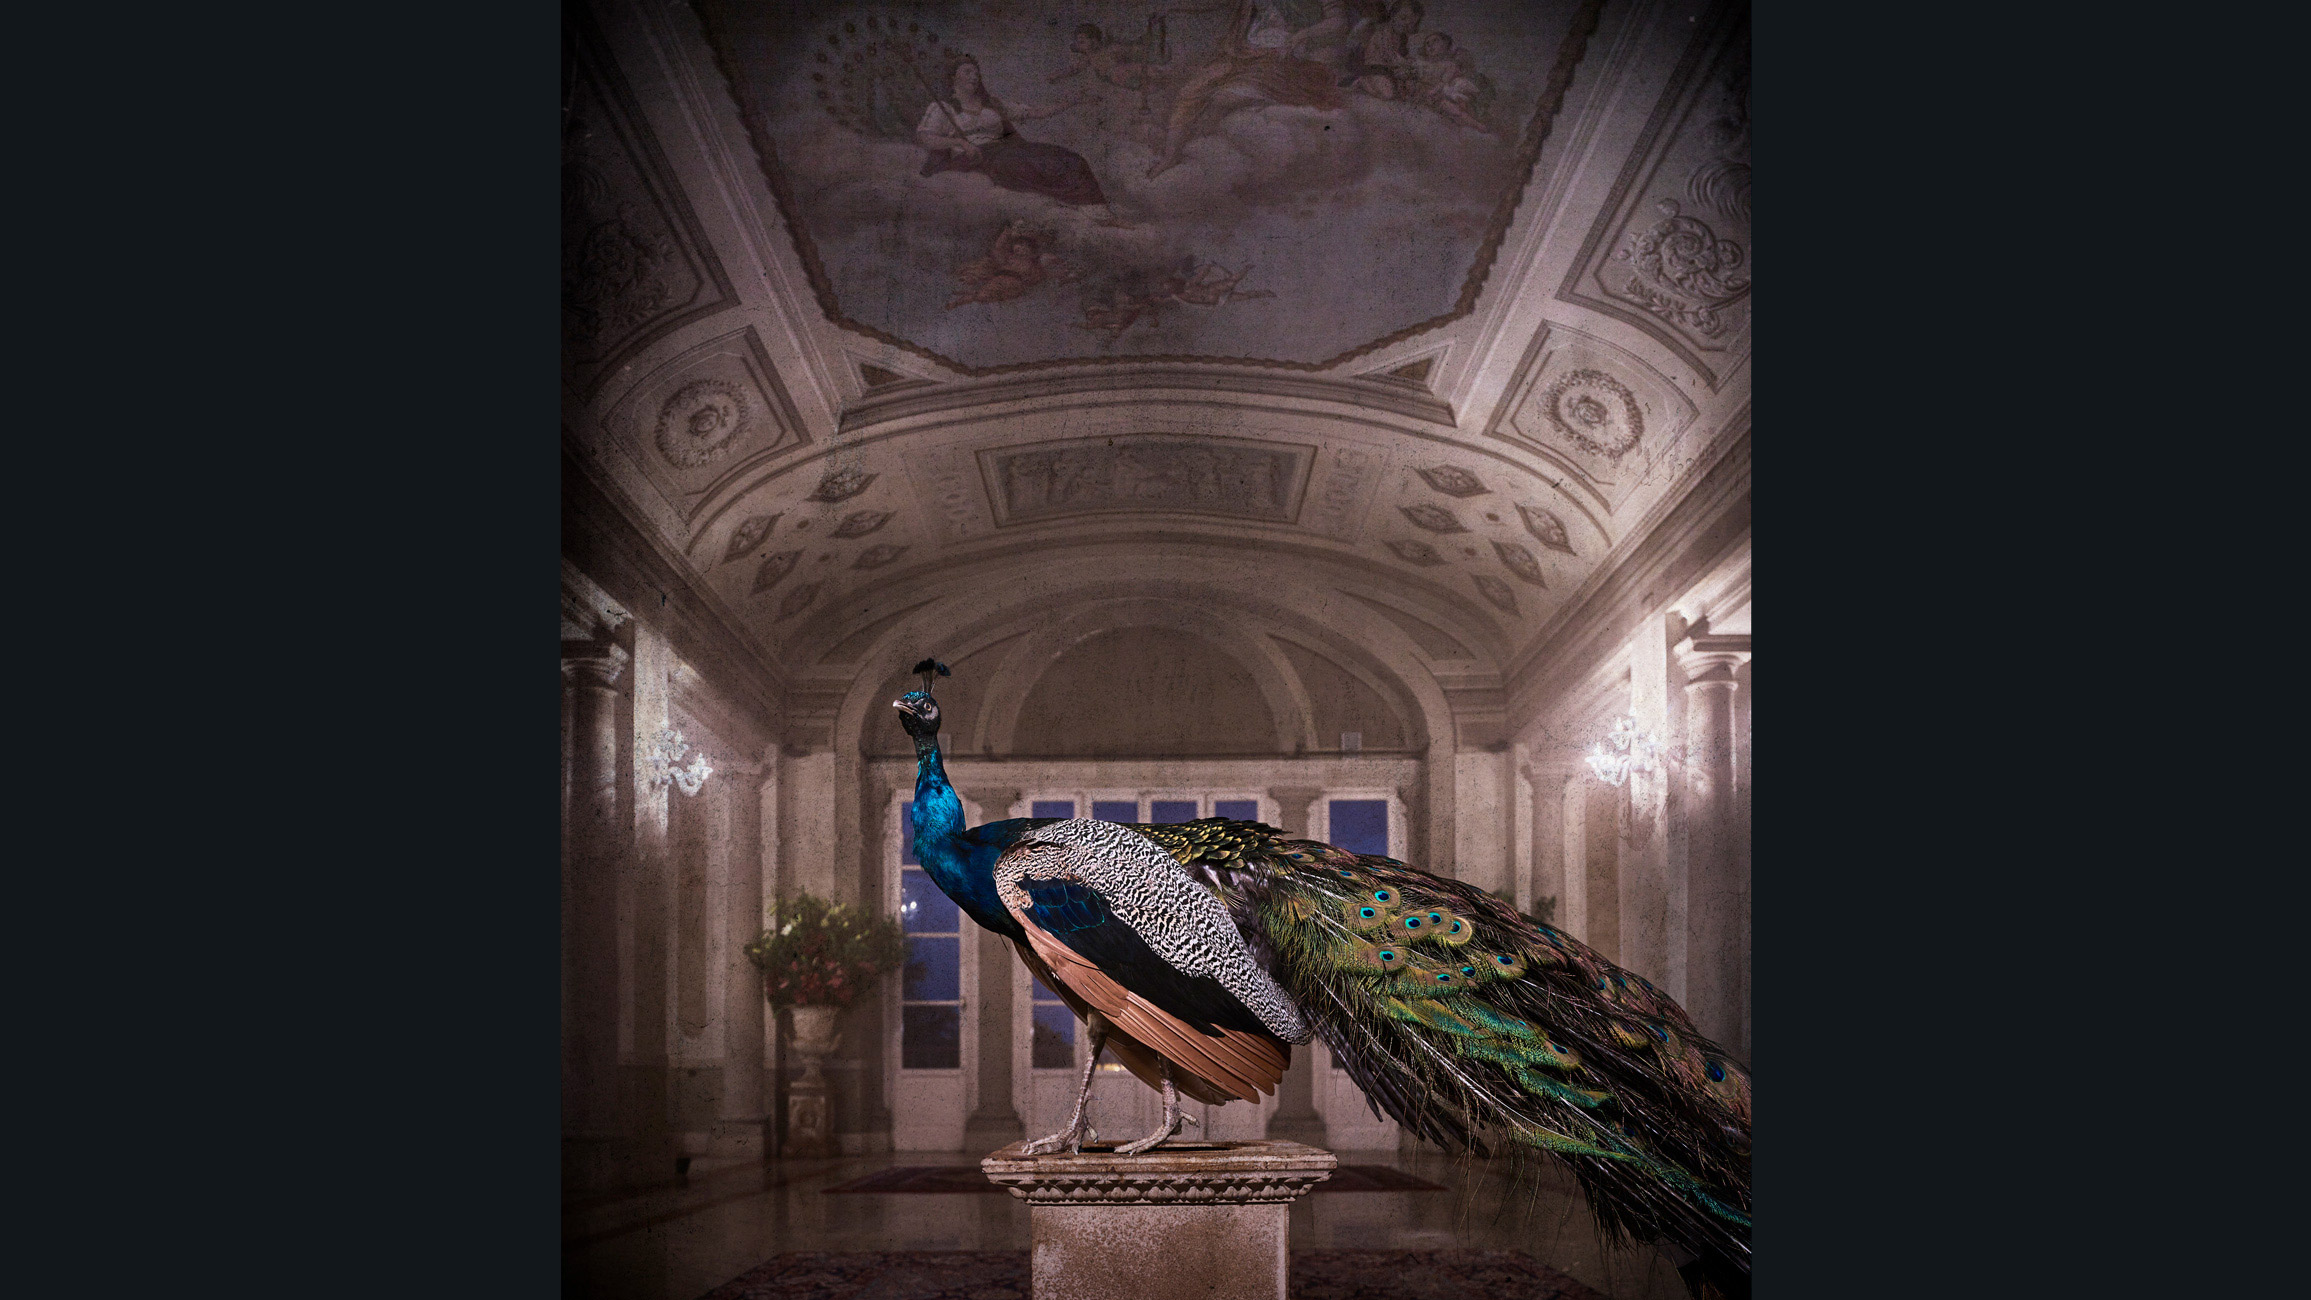 the Peacock at Bagni di Pisa